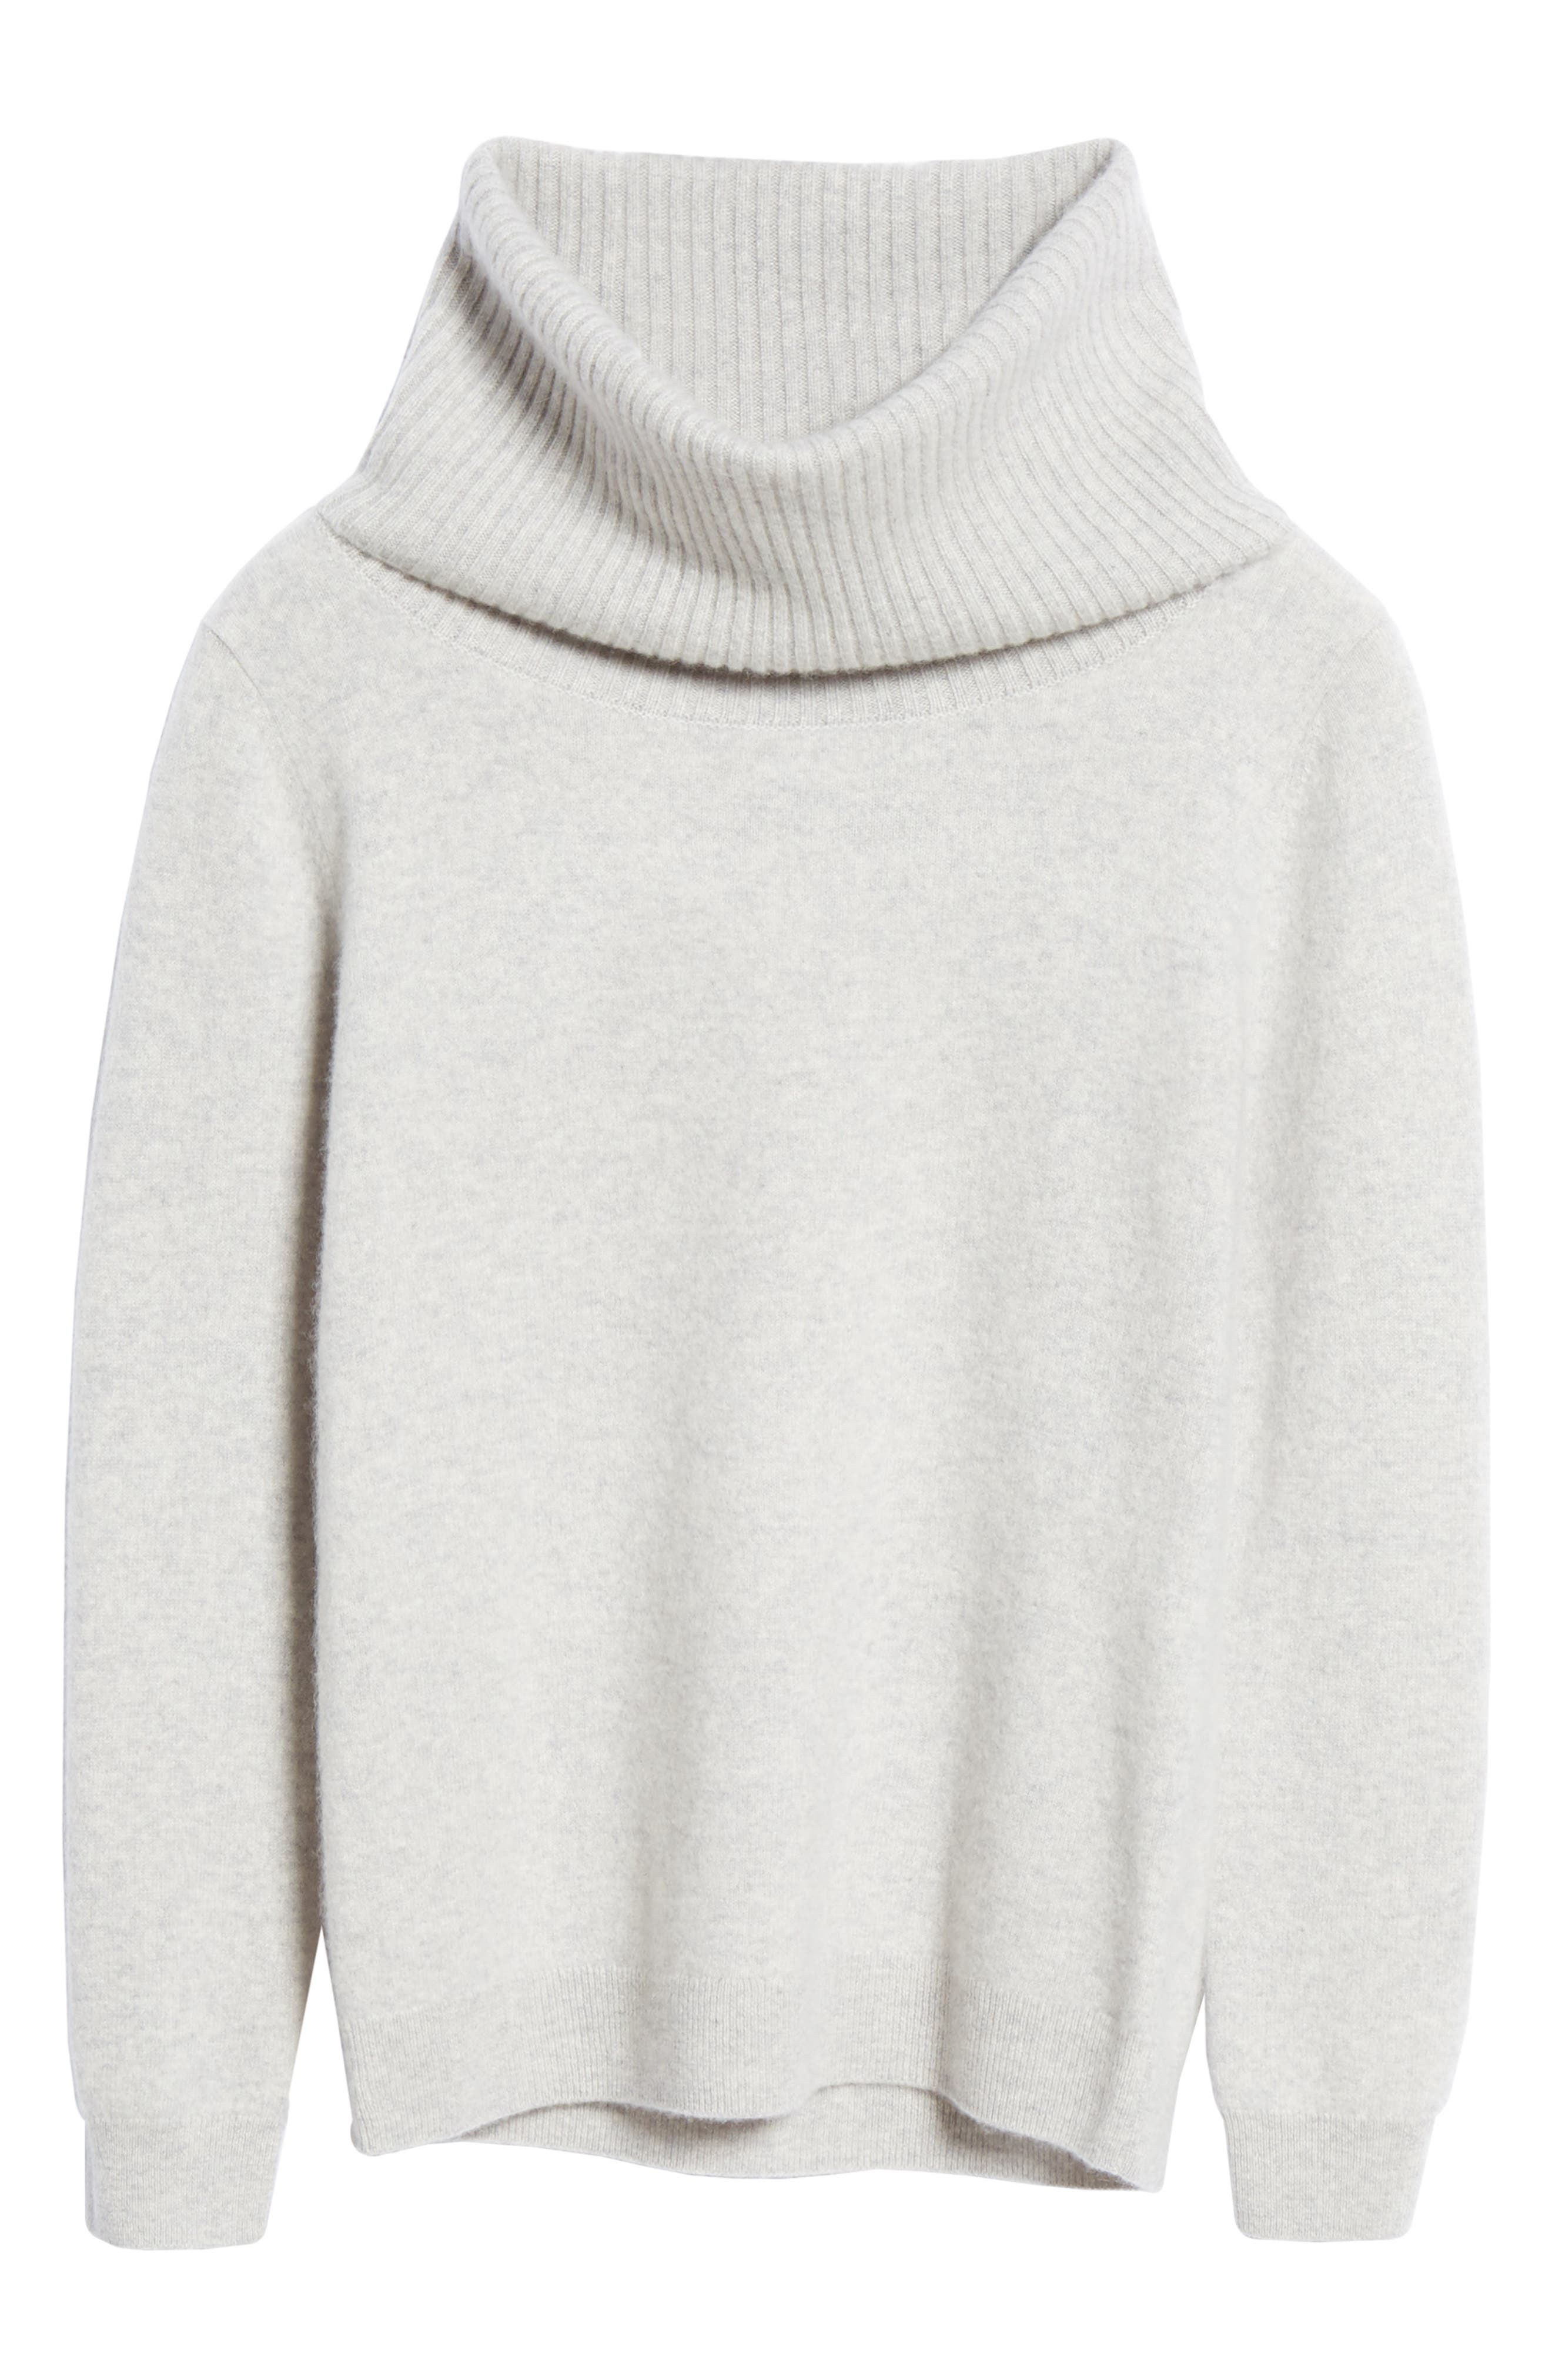 Boiled Cashmere Cowl Neck Sweater,                             Alternate thumbnail 6, color,                             GREY CLAY HEATHER